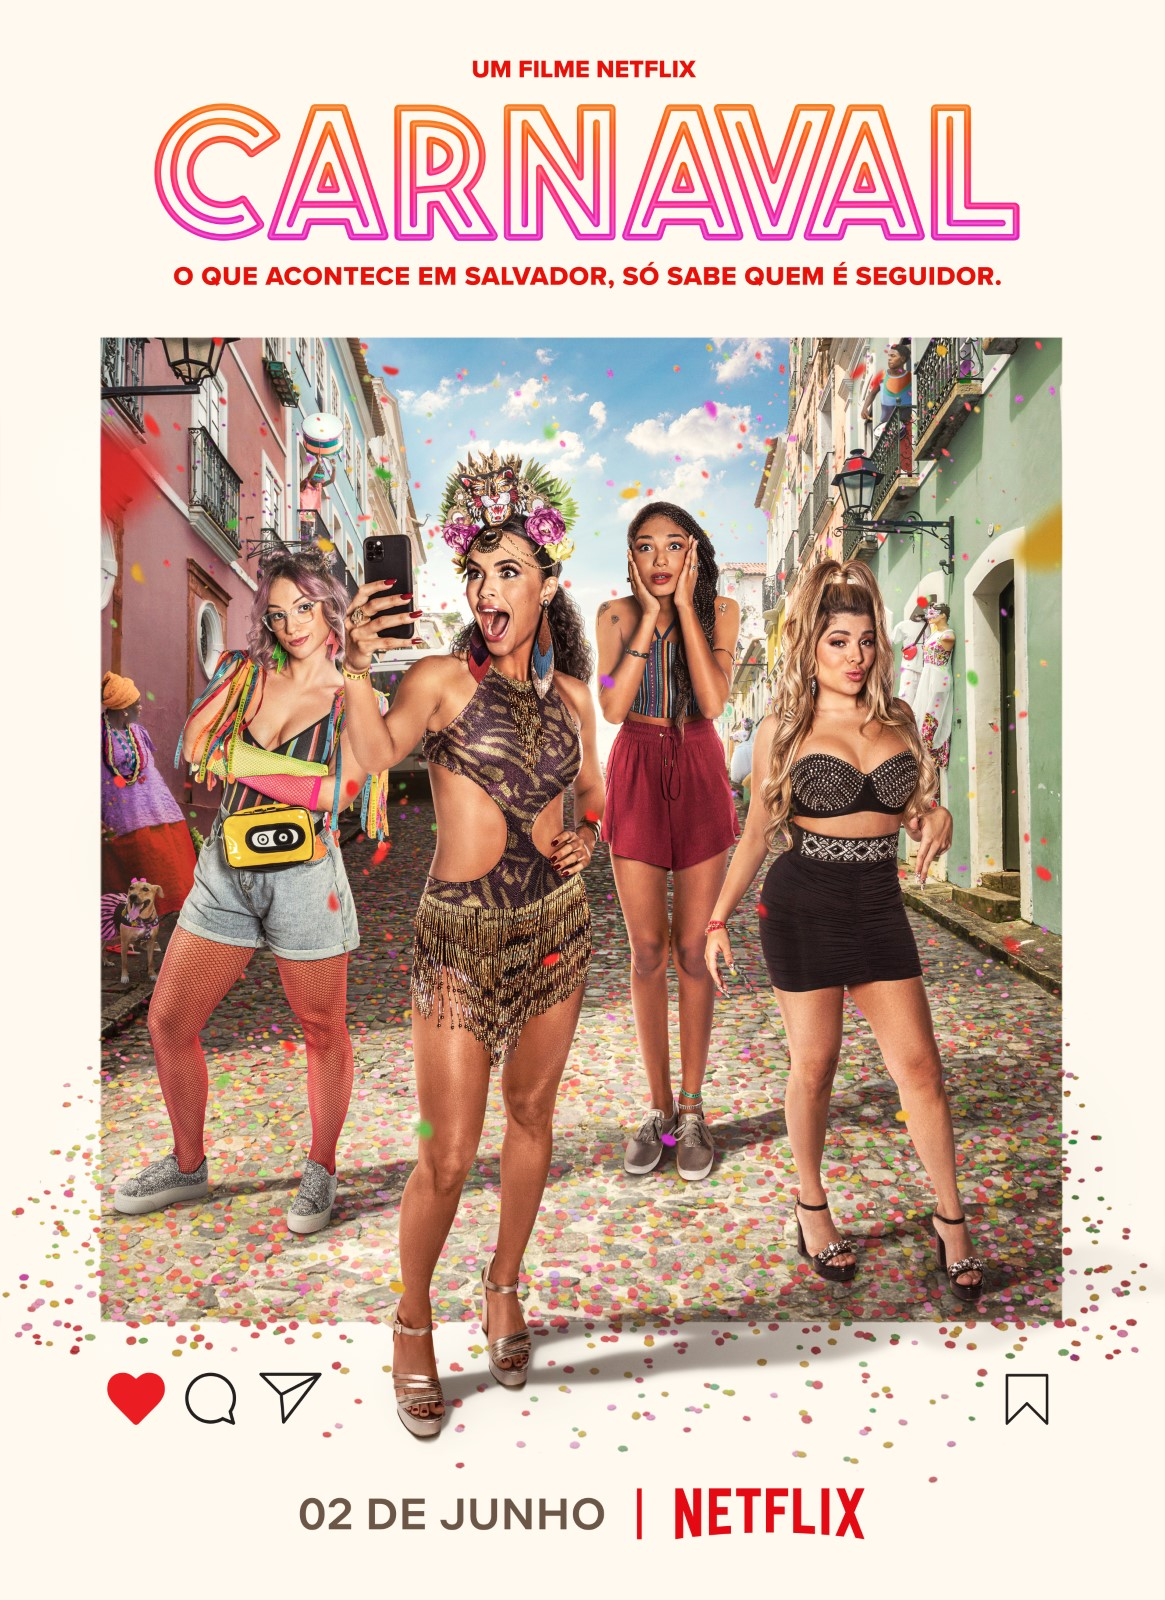 After a breakup, an influencer takes her friends on a free trip to Bahia's vibrant Carnival, where she learns life's not just about social media likes.